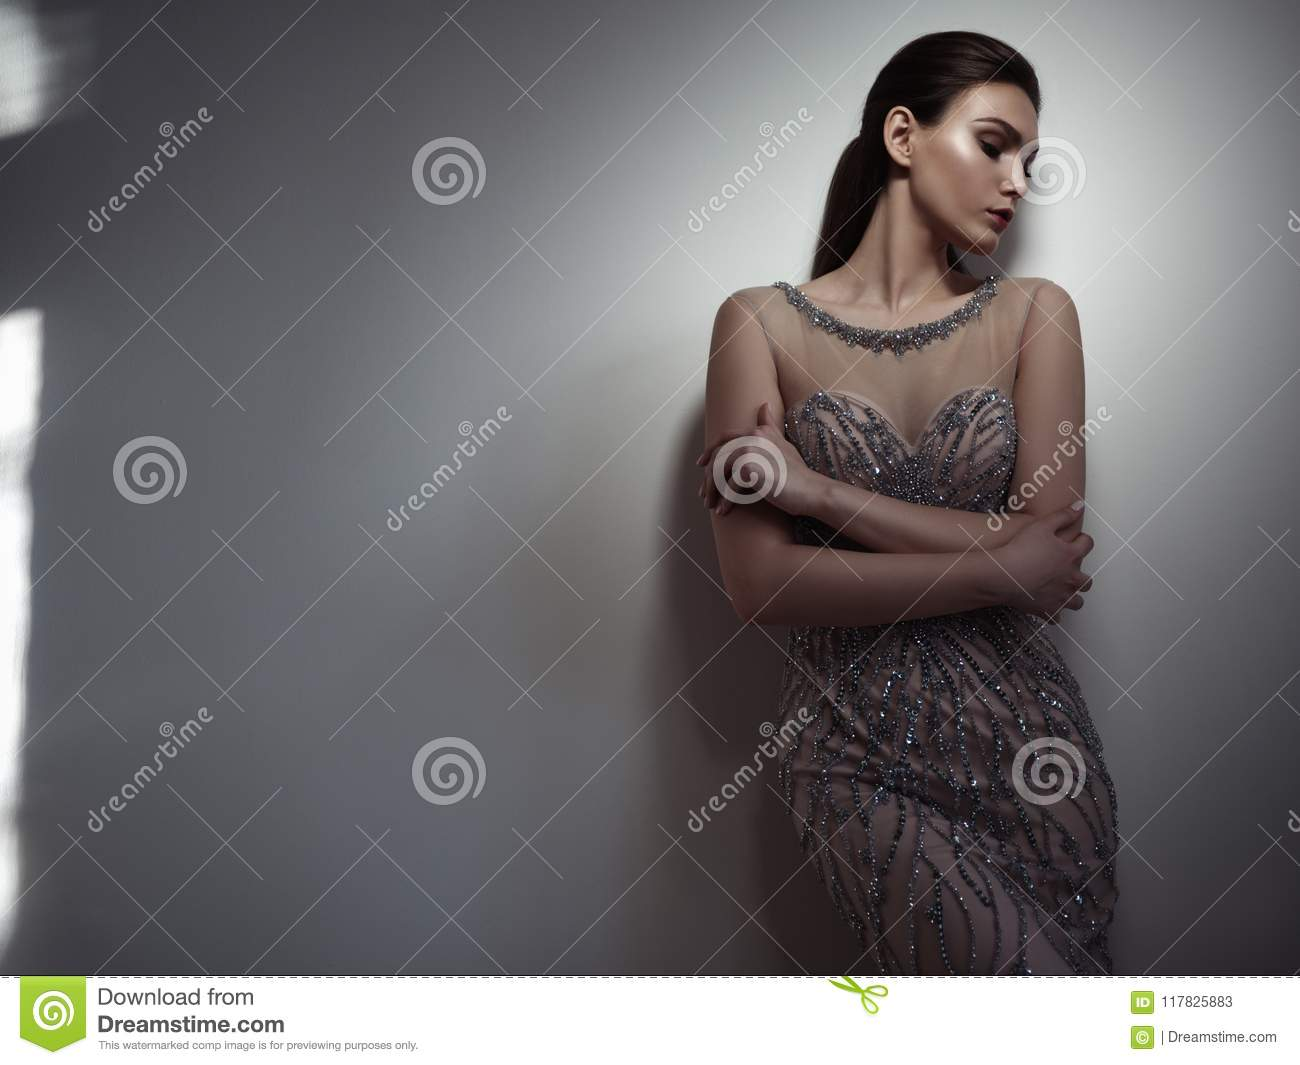 Fatale brunette with expressive dark make up and sleeked hair is posing in the studio on the gray background in the smart beige ev